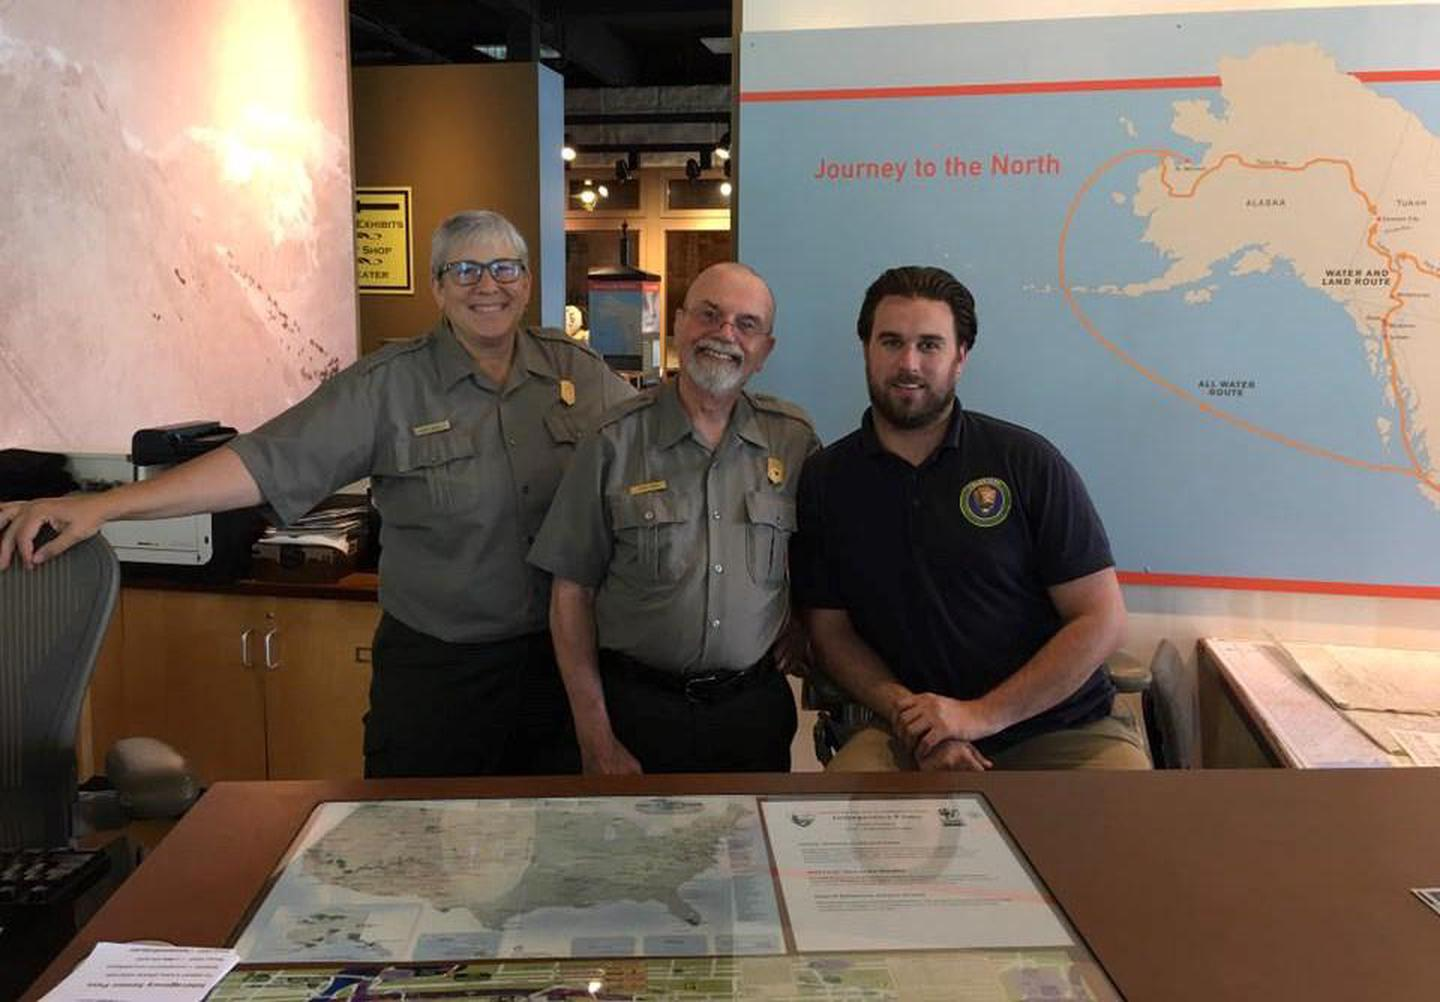 Rangers and volunteers are available to answer questions during open hours.Visitor Center Desk Staff